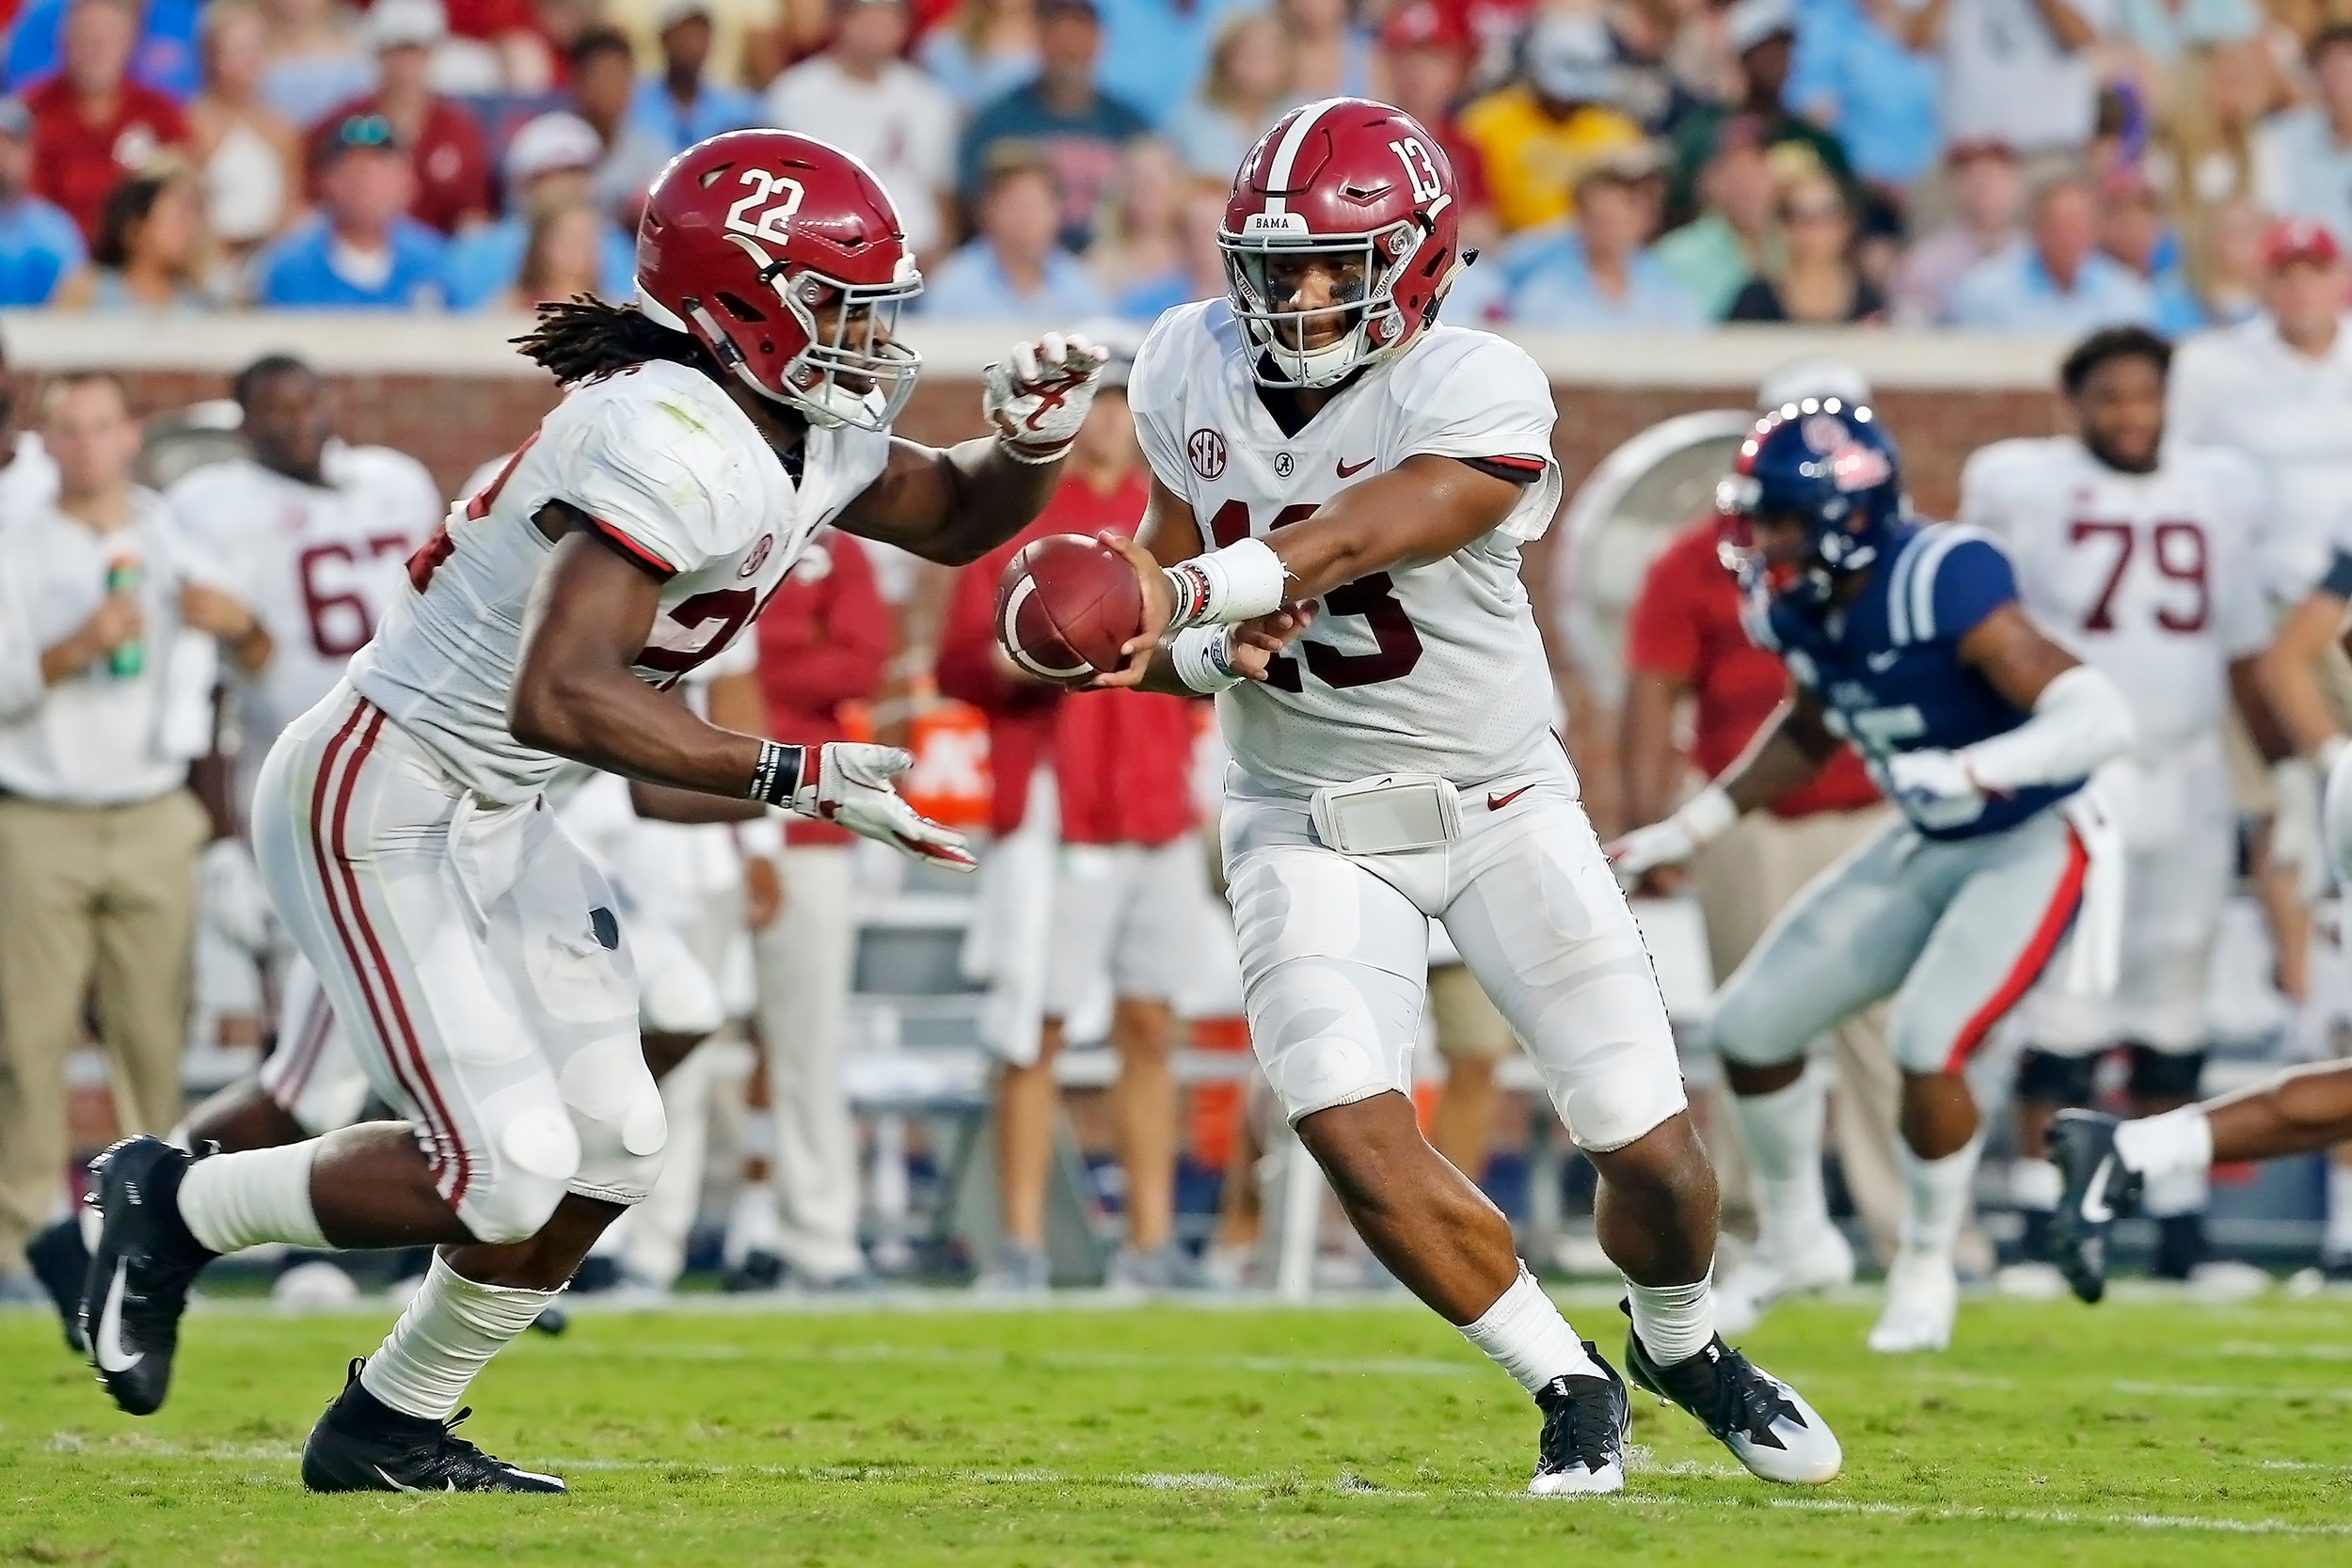 Alabama Crimson Tide quarterback Tua Tagovailoa (13) hands off to running back Najee Harris (22)during the game between the University of Alabama and Ole Miss at Vaught-Hemingway Stadium. Jason Clark / Daily Mountain Eagle